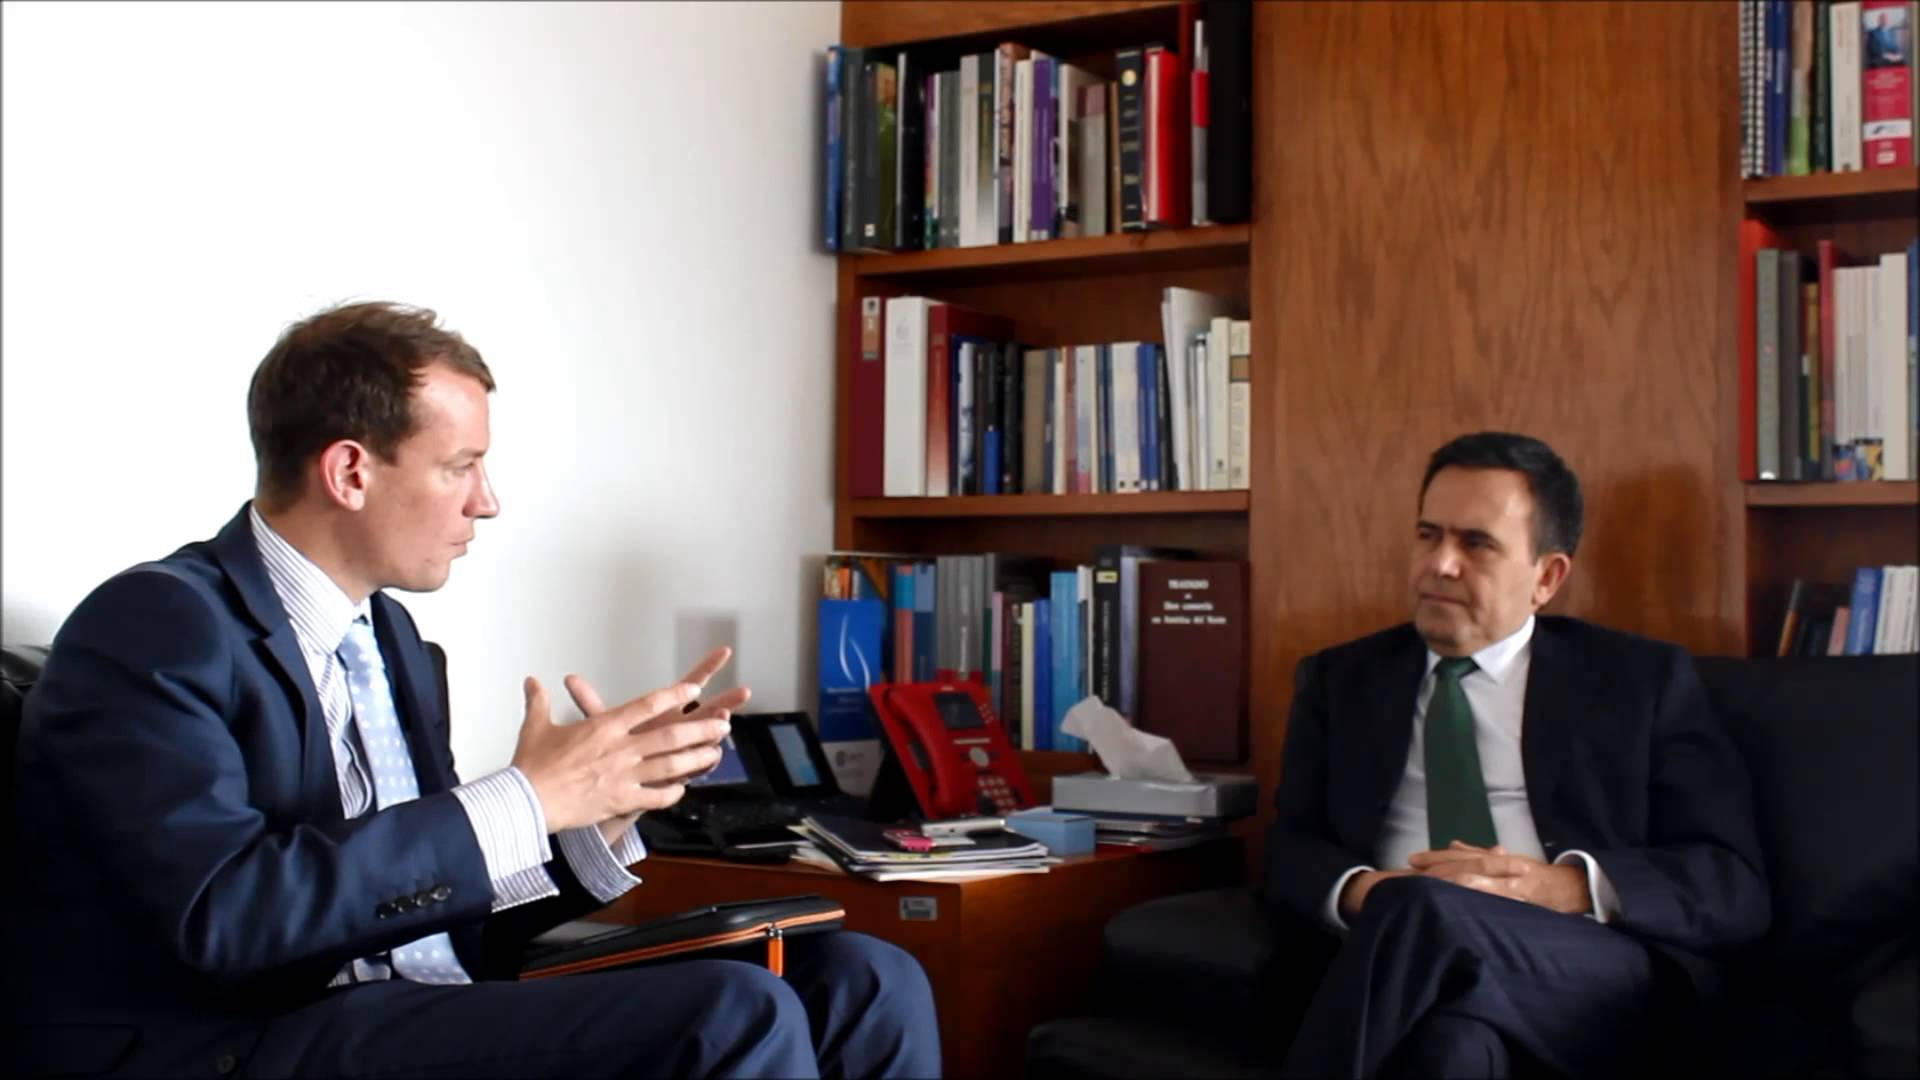 Face-to-Face: LatAm INVESTOR catches up with Mexico's Minister of Economy